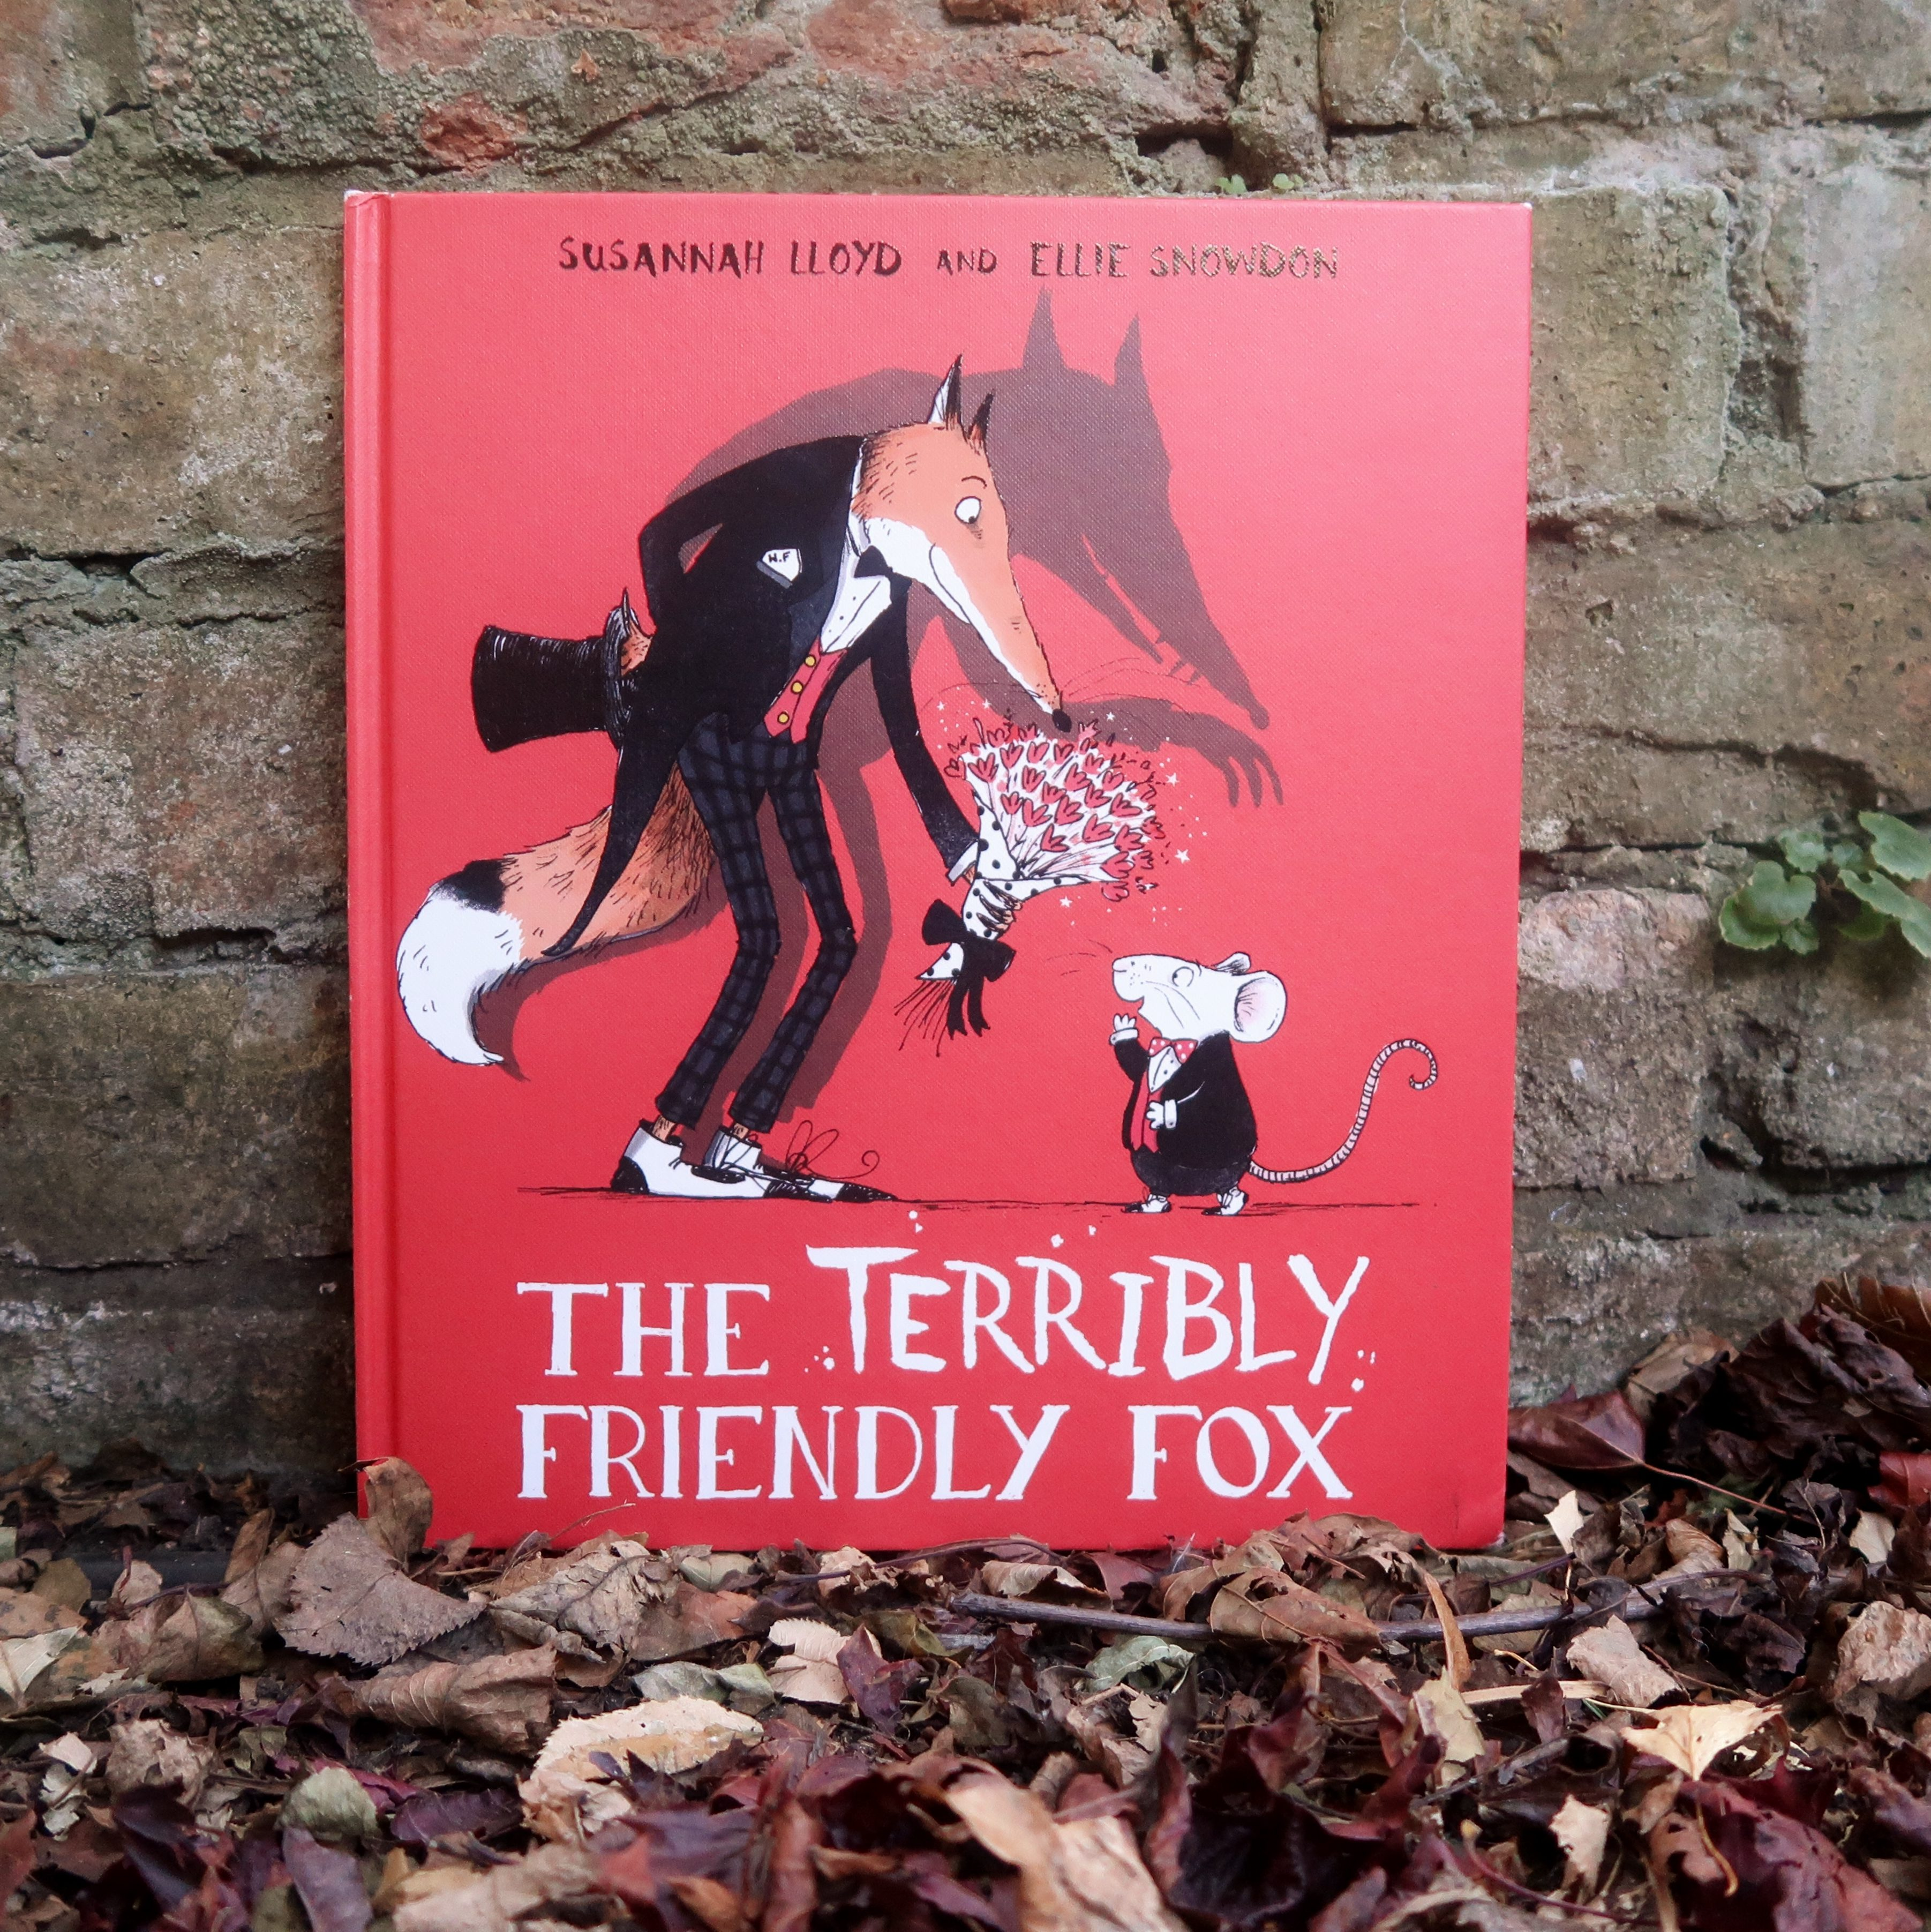 The cover of The Terribly Friendly Fox - a picture book by Susannah Lloyd, illustrated by Ellie Snowden. It's a red hardback, with a besuited fox on the front, presenting a punch of flowers to a small mouse. A shadow looms behind, ominously.